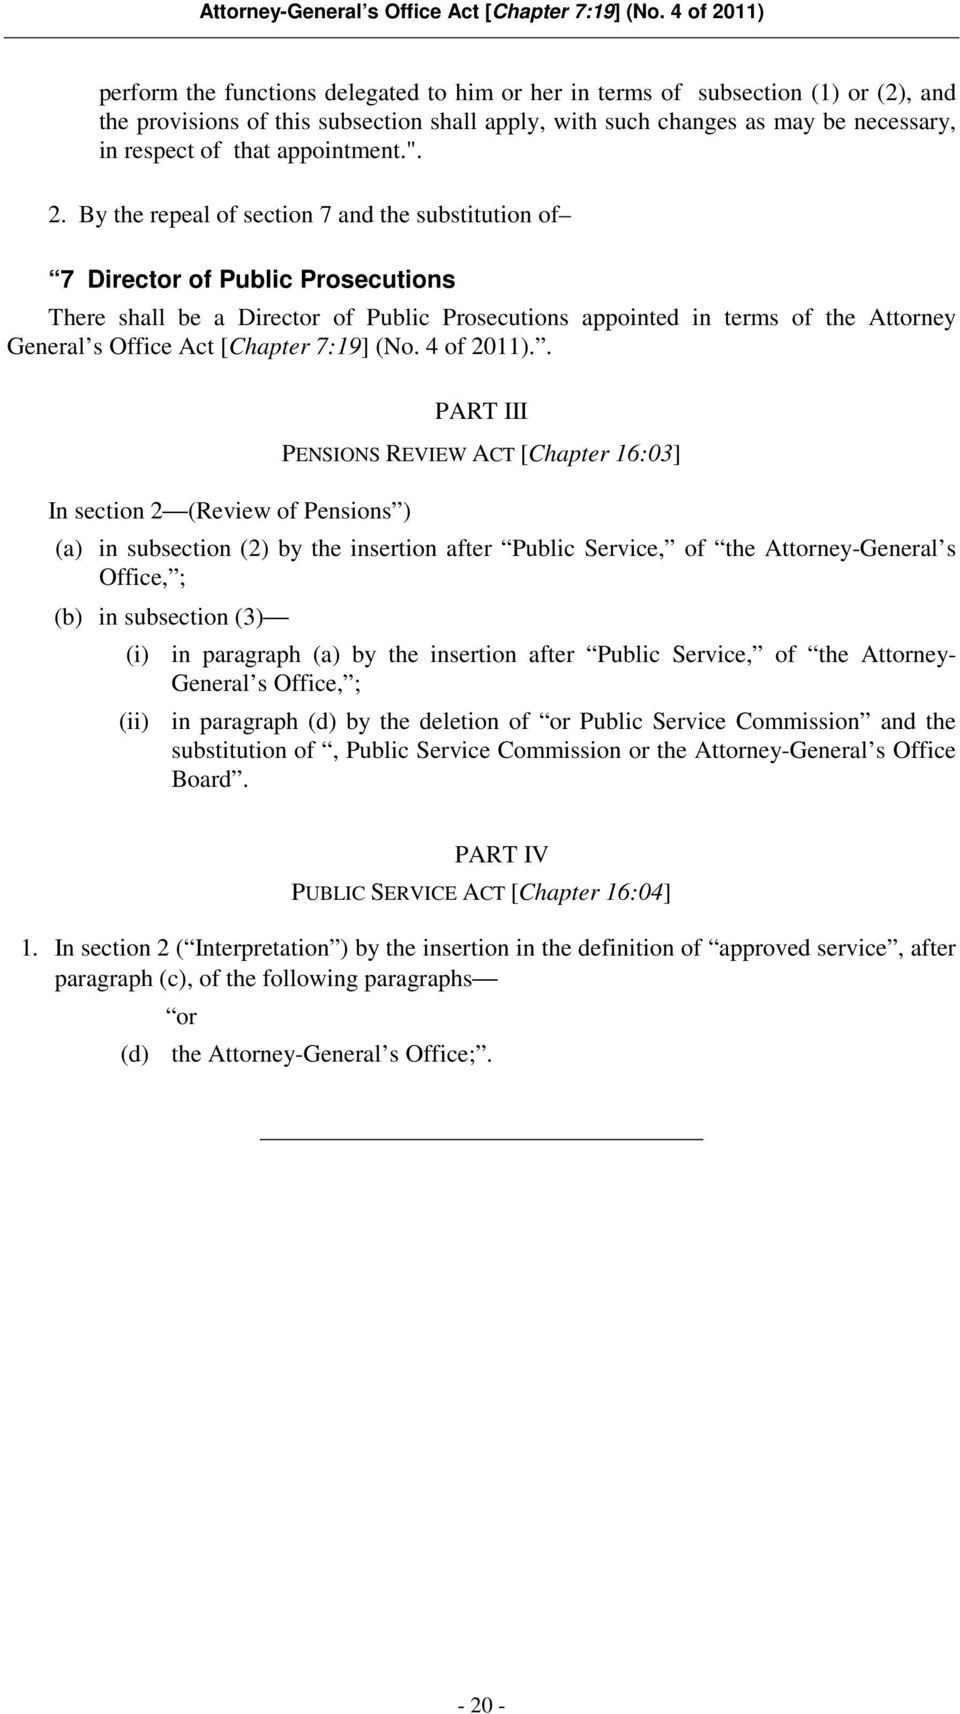 By the repeal of section 7 and the substitution of 7 Director of Public Prosecutions There shall be a Director of Public Prosecutions appointed in terms of the Attorney General s Office Act [Chapter